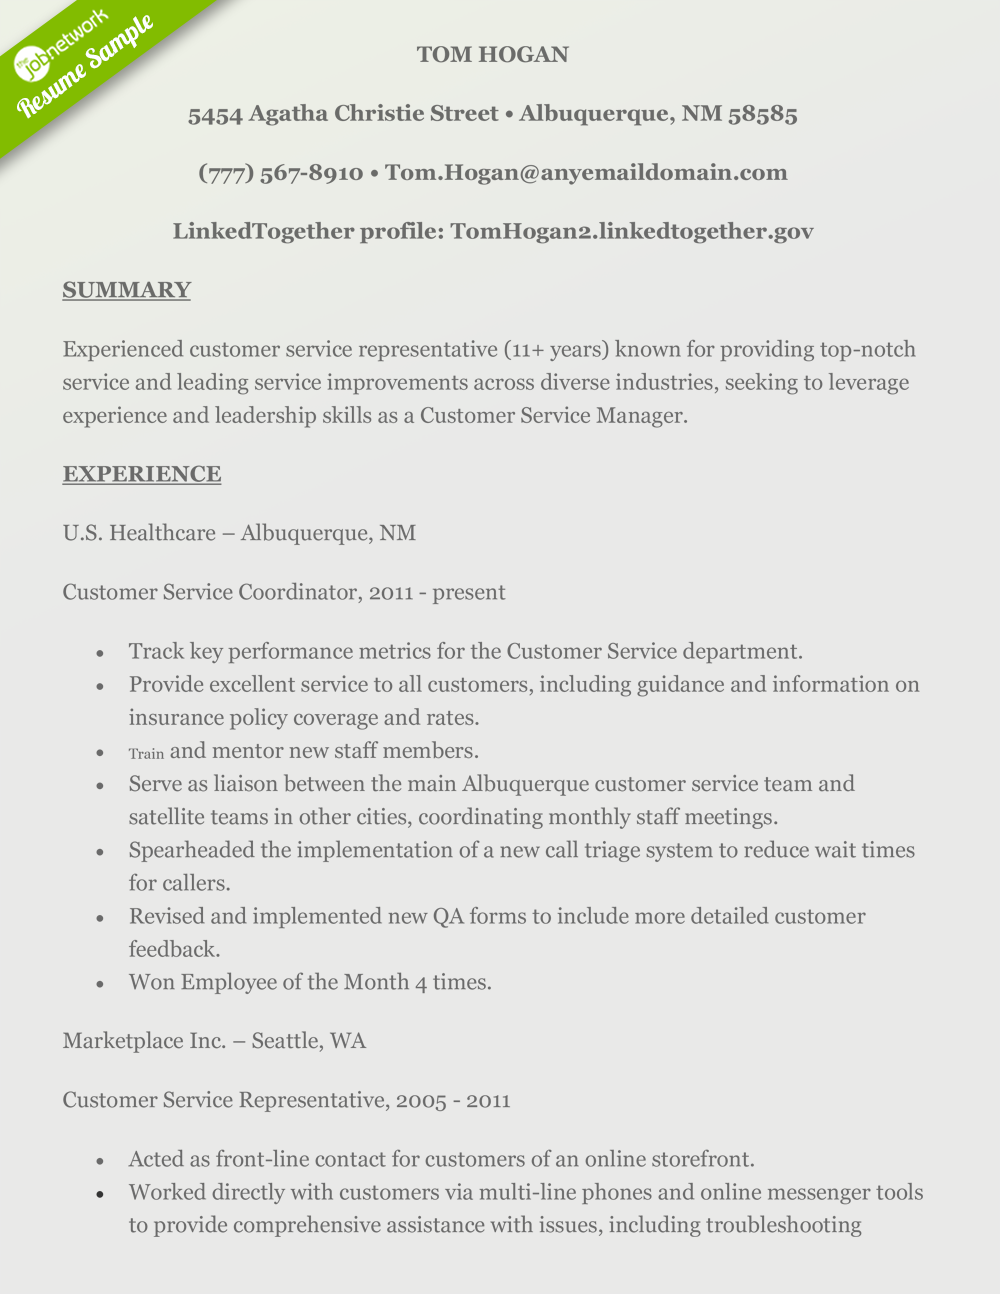 How To Craft A Perfect Customer Service Resume Using Examples